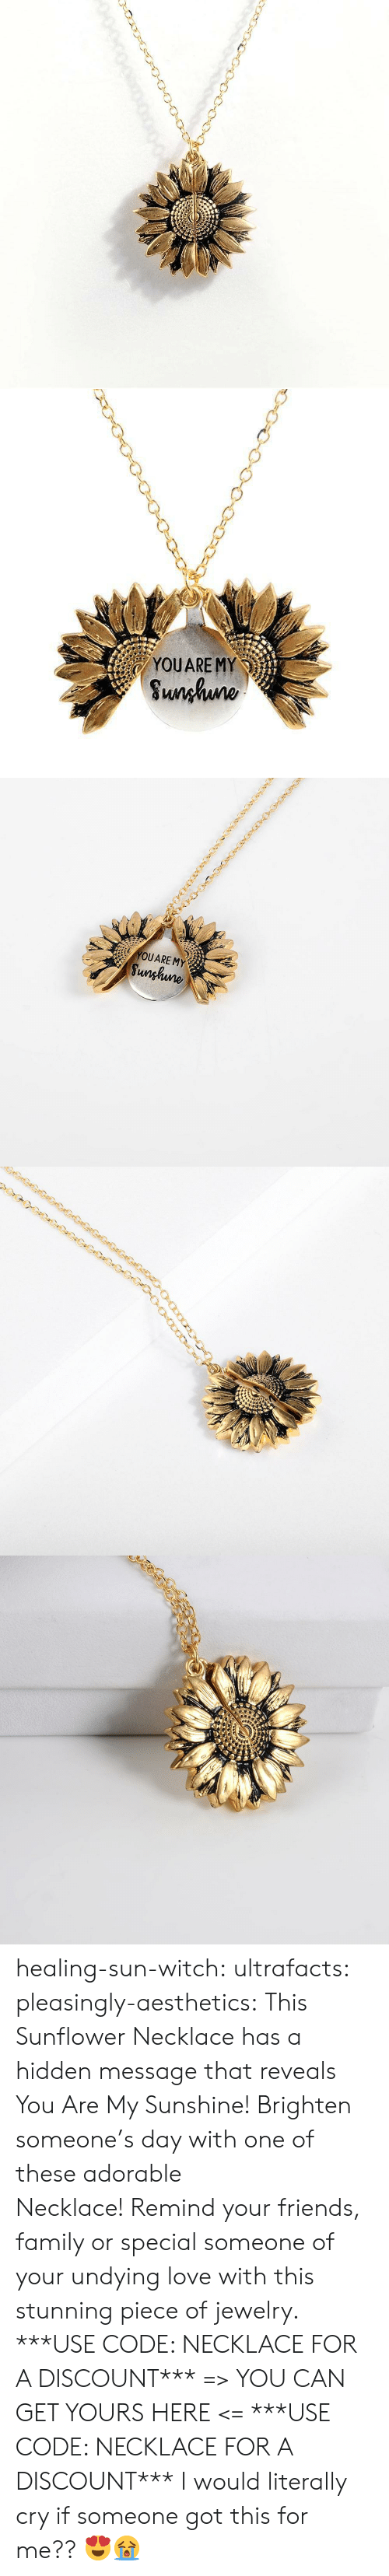 Family, Friends, and Love: YOUARE MY  Sunhuno   YOUARE MY  Sunghune healing-sun-witch: ultrafacts:   pleasingly-aesthetics:  This Sunflower Necklace has a hidden message that reveals You Are My Sunshine! Brighten someone's day with one of these adorable Necklace!Remind your friends, family or special someone of your undying love with this stunning piece of jewelry. ***USE CODE: NECKLACE FOR A DISCOUNT*** => YOU CAN GET YOURS HERE <=    ***USE CODE: NECKLACE FOR A DISCOUNT***     I would literally cry if someone got this for me?? 😍😭